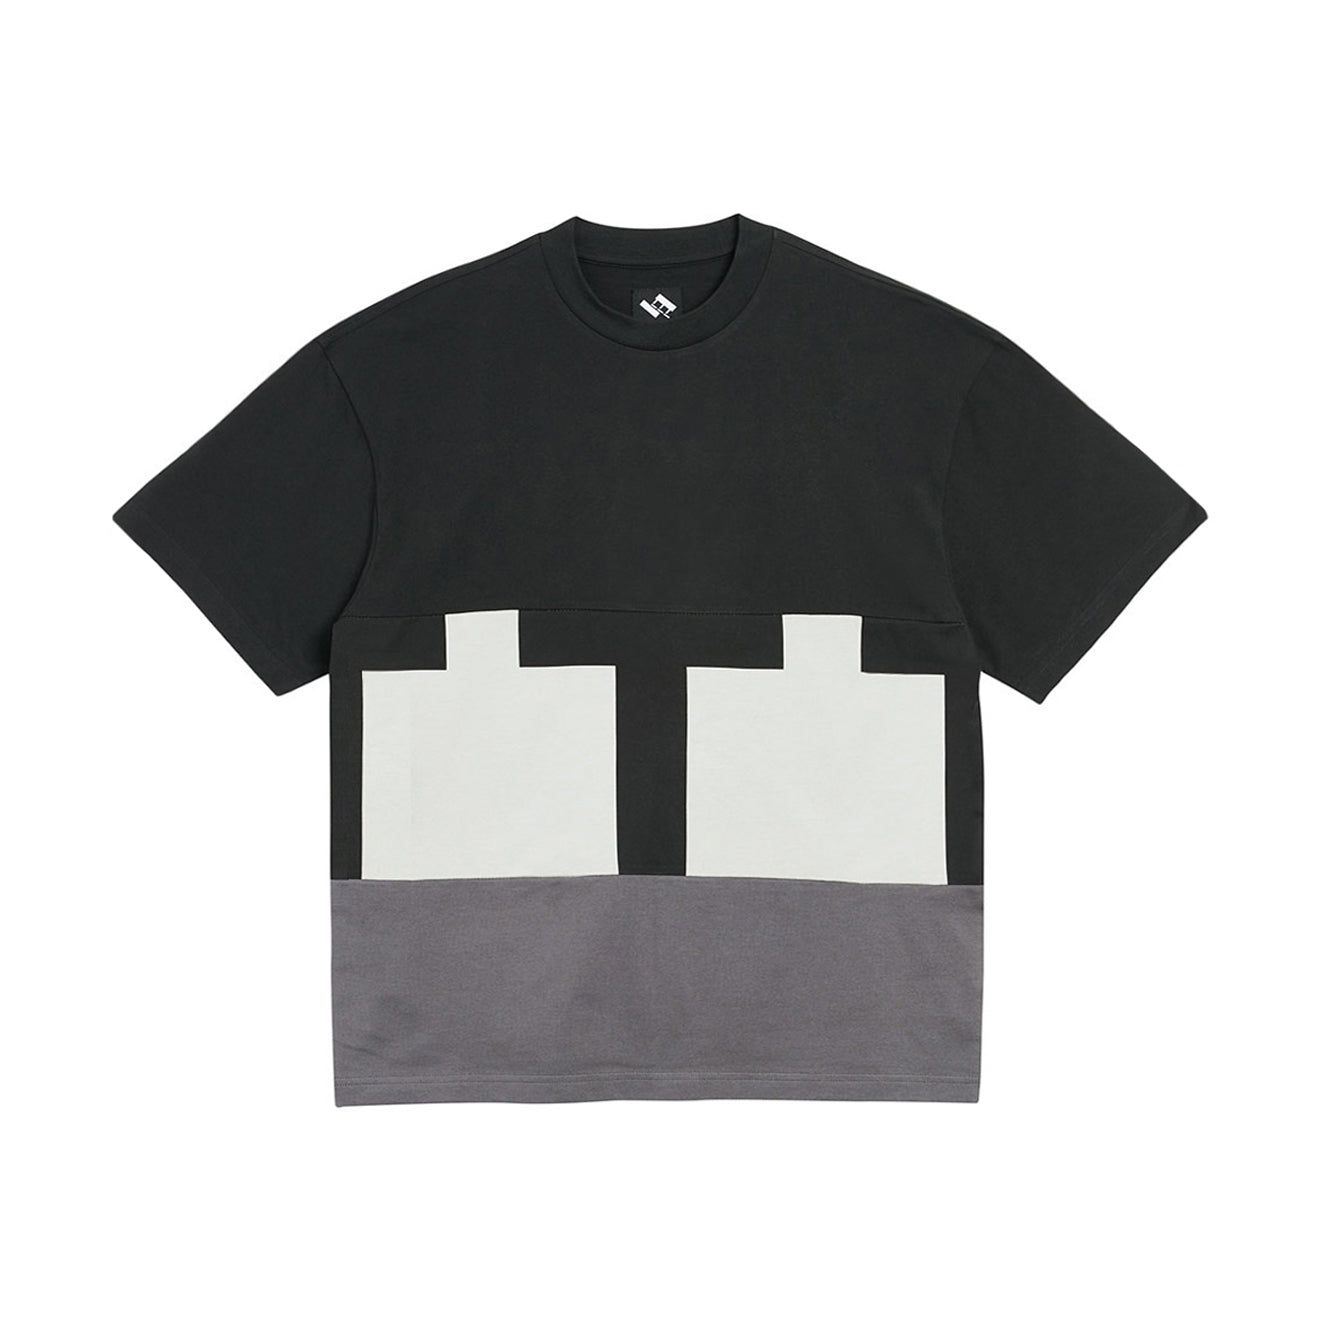 Cut & Sew T-Shirt (Black/Grey)